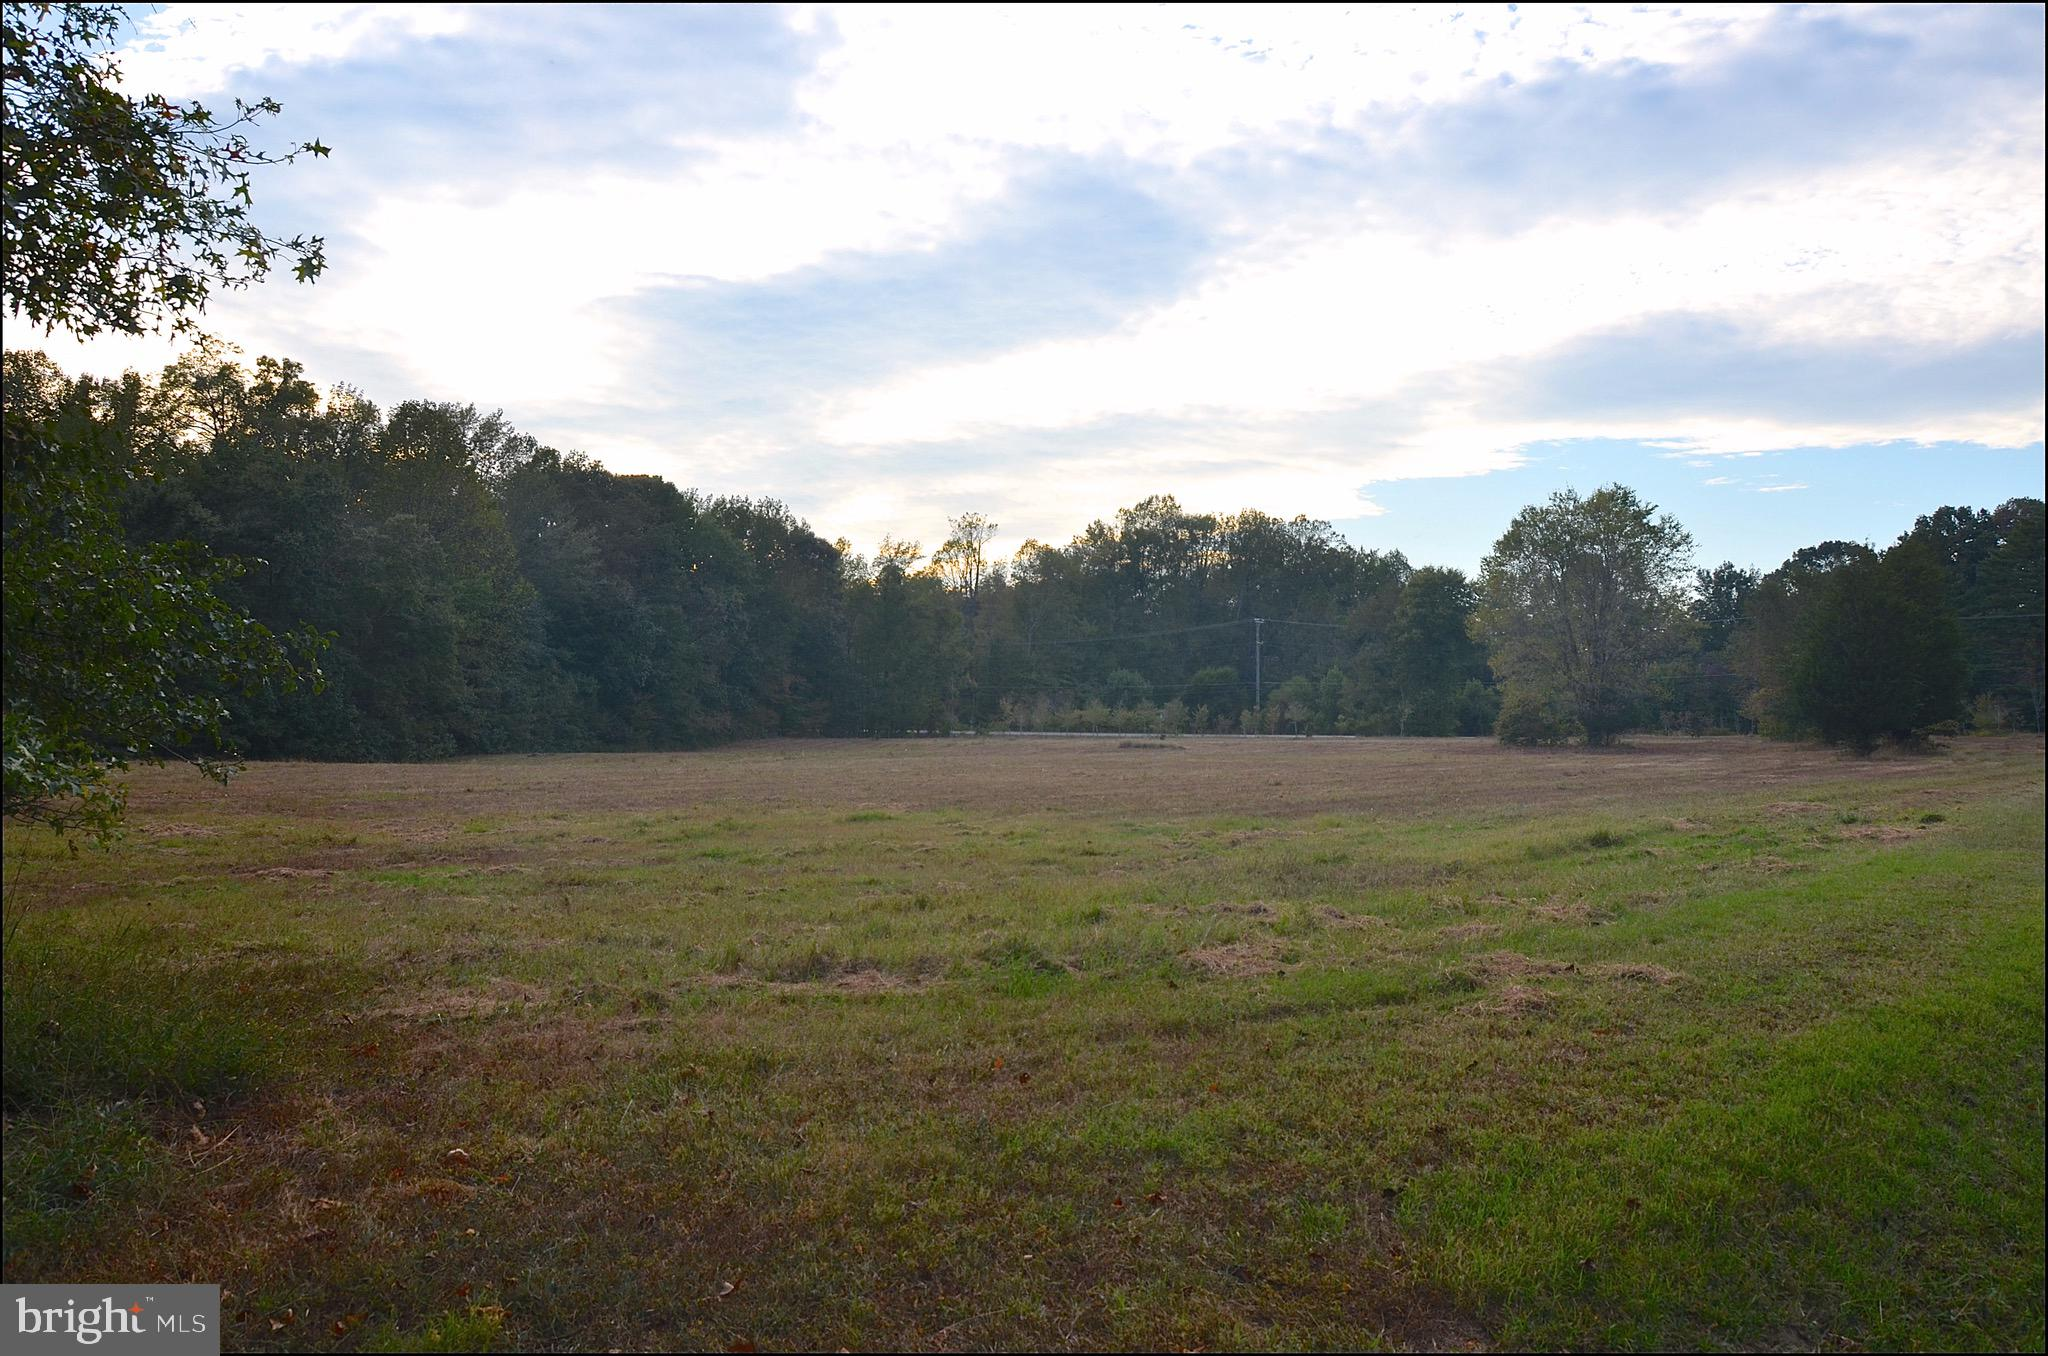 4 Acres in Edgewater,  Parcel 254, Beautiful flat lot, mostly cleared and bordered by trees.   Wet season perc completed in 2019 for 3500+ SF house.  Blue Ribbon schools.   Bring your own builder or we can recommend one for you.   Buyer responsible for determining lot lines, any possible easements, critical area or any county building requirements.   No HOA restrictions.